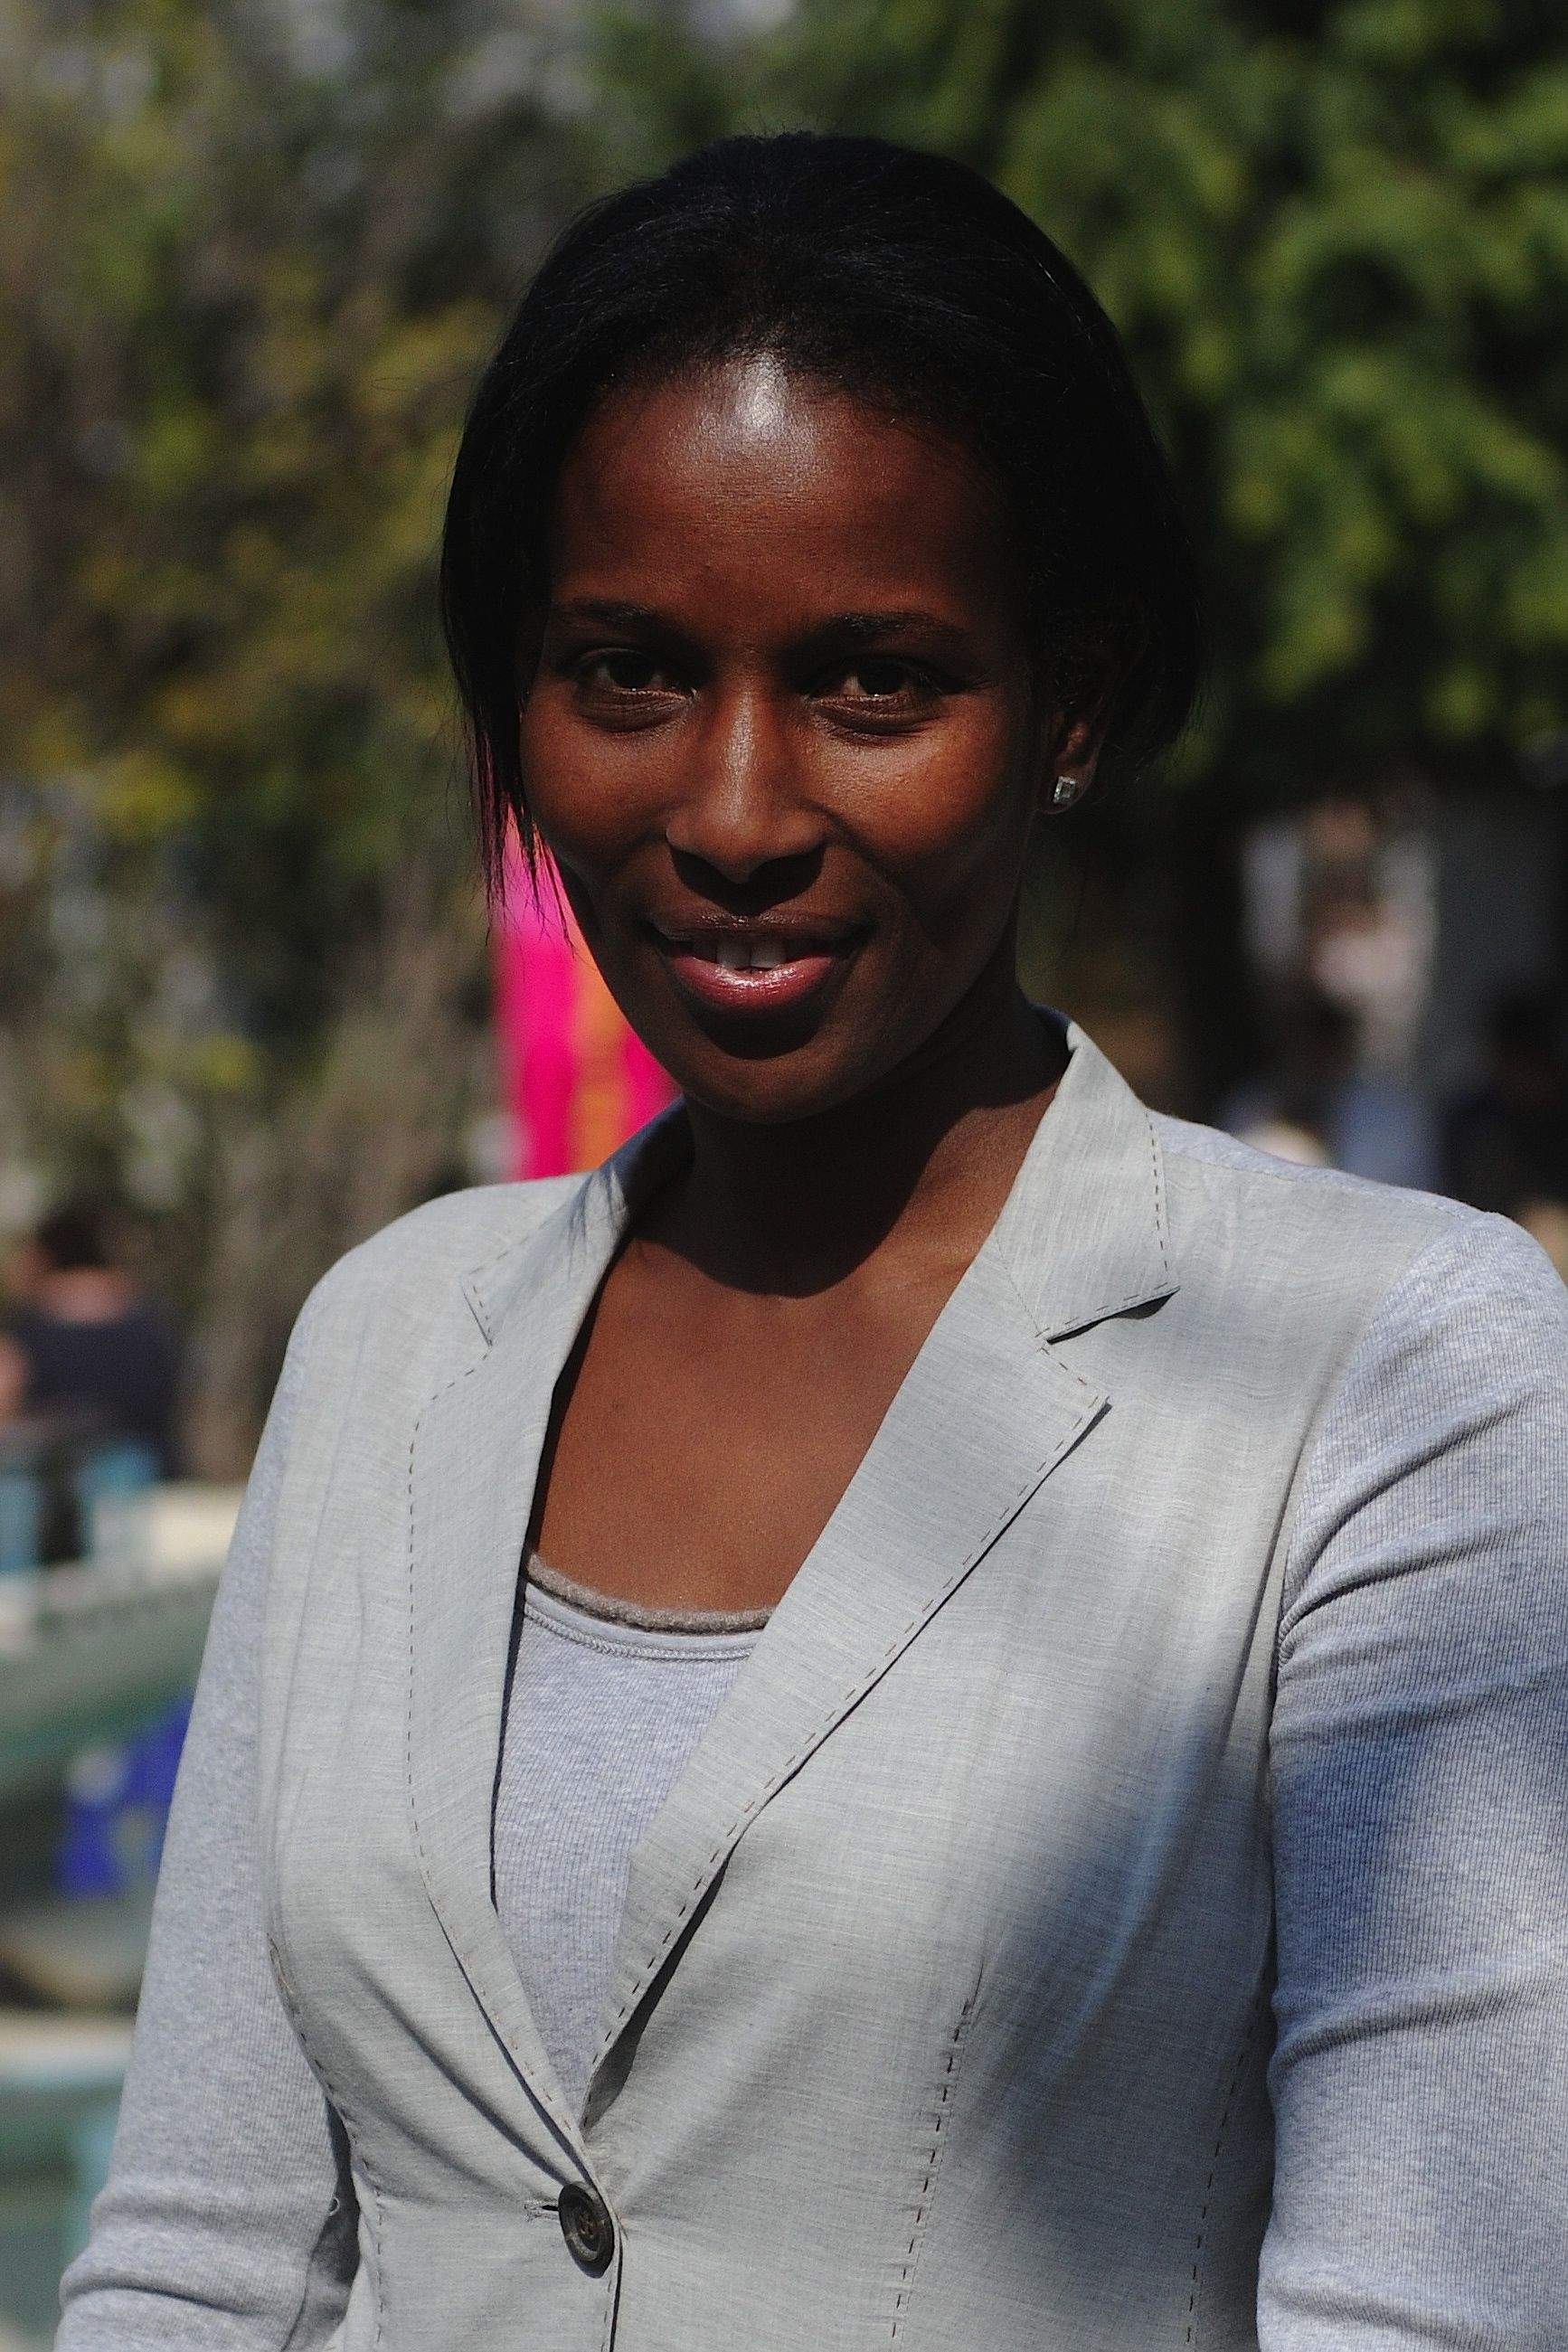 ?Nomad? author Ayaan Hirsi Ali. (click to enlarge)